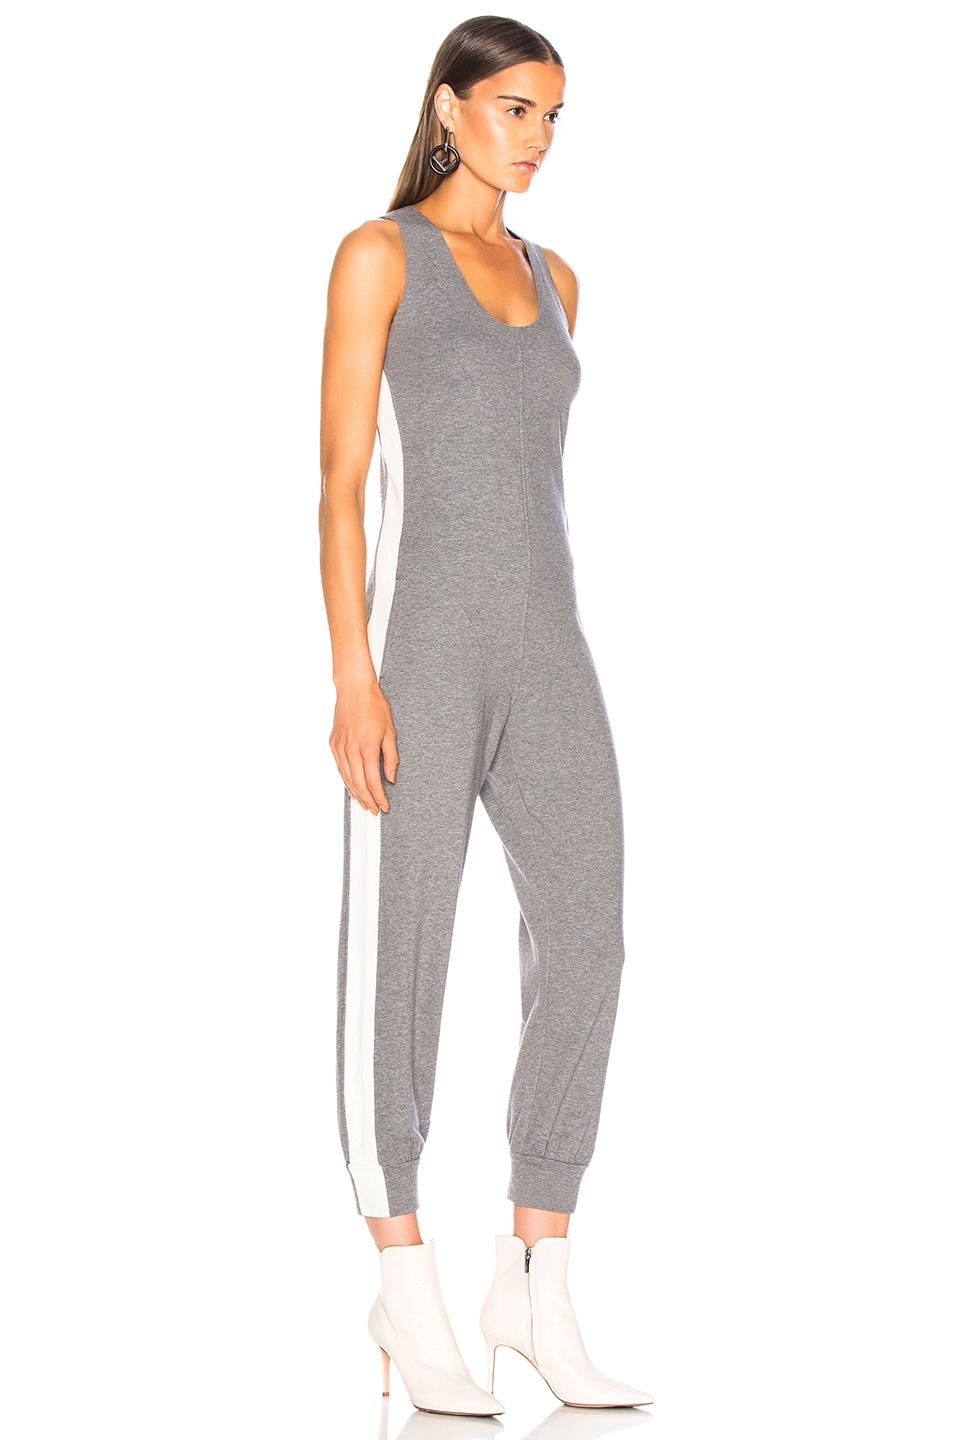 Image 3 of Norma Kamali Side Stripe Cross Back Jog Jumpsuit in Medium Heather Grey & Almost White